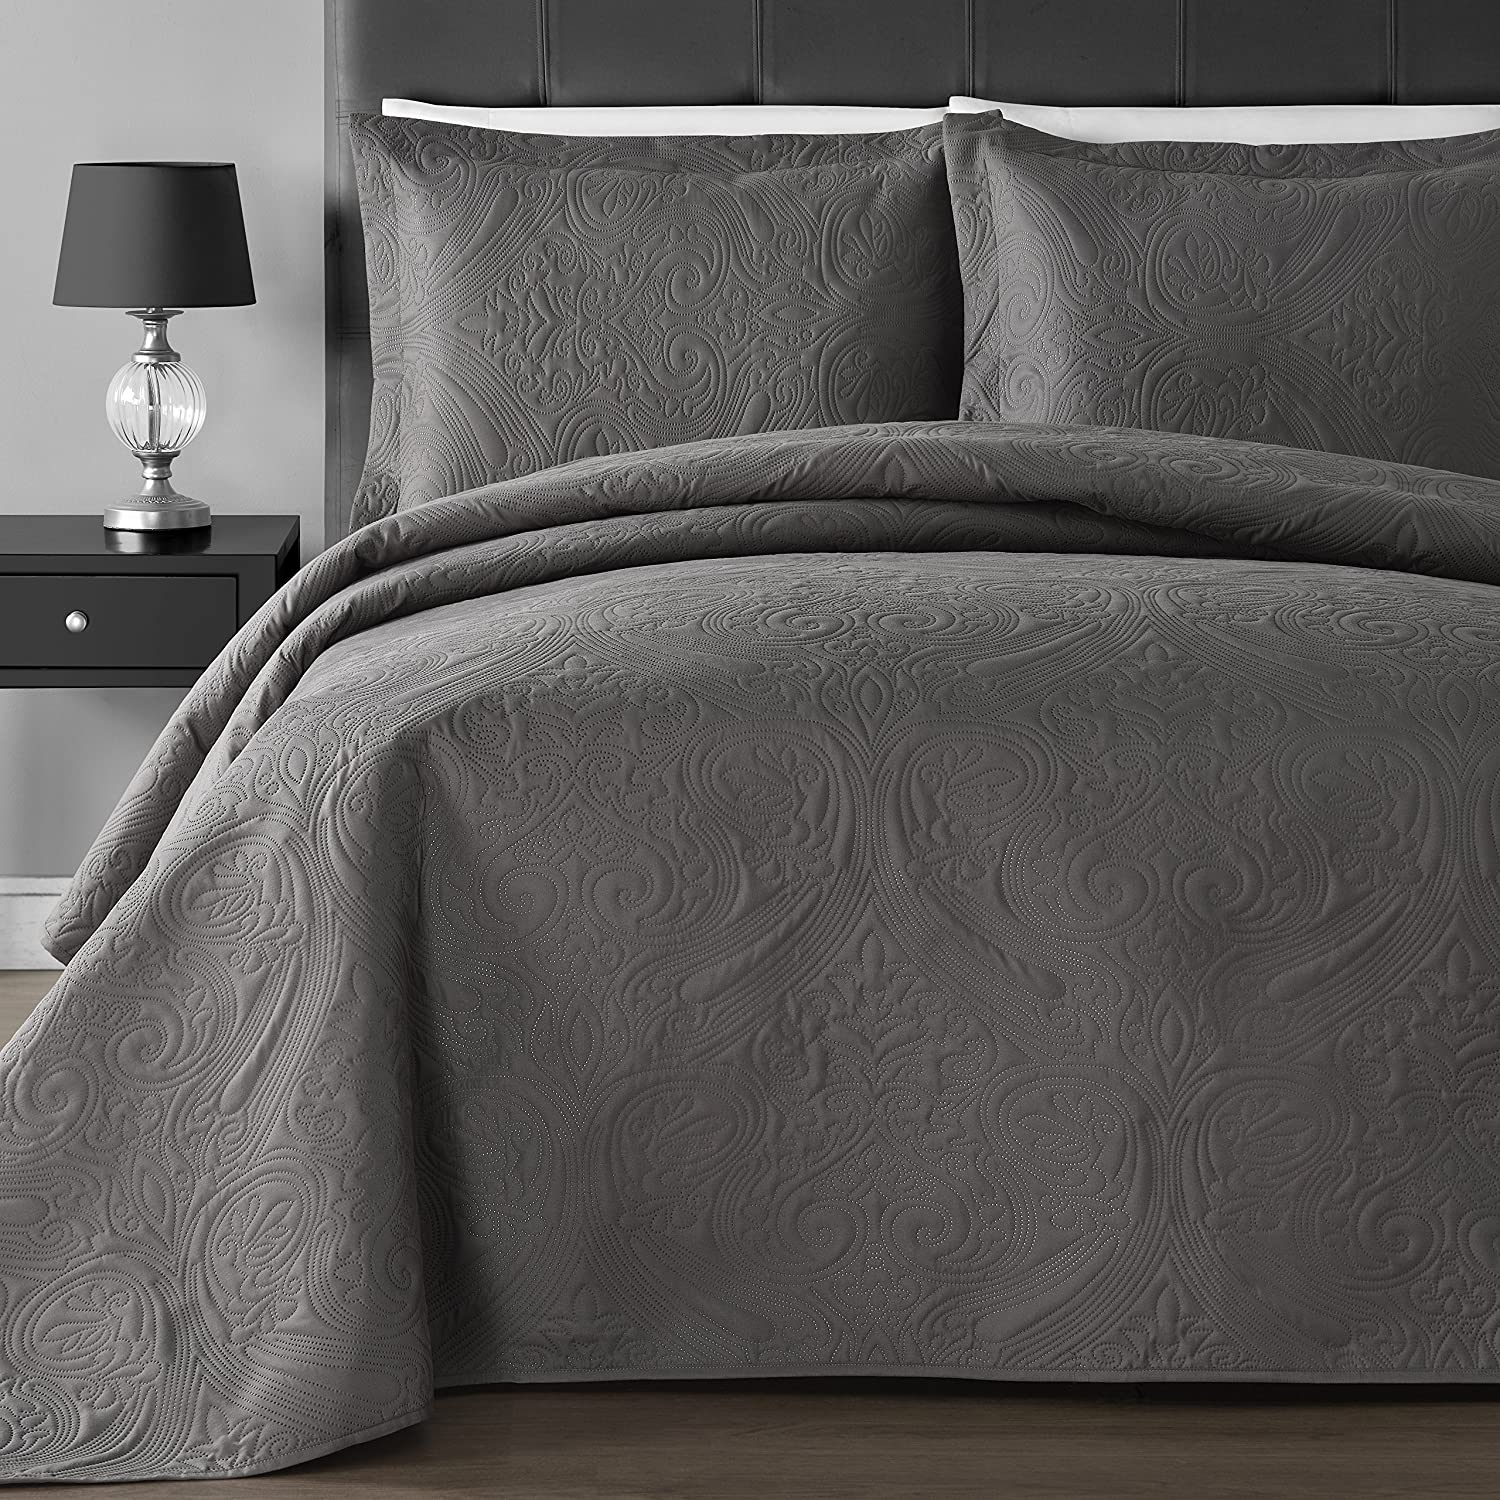 Exceptional Amazon.com: Comfy Bedding Extra Lightweight And Oversized Thermal Pressing  Floral 3 Piece Coverlet Set (King/Cal King, Grey): Home U0026 Kitchen